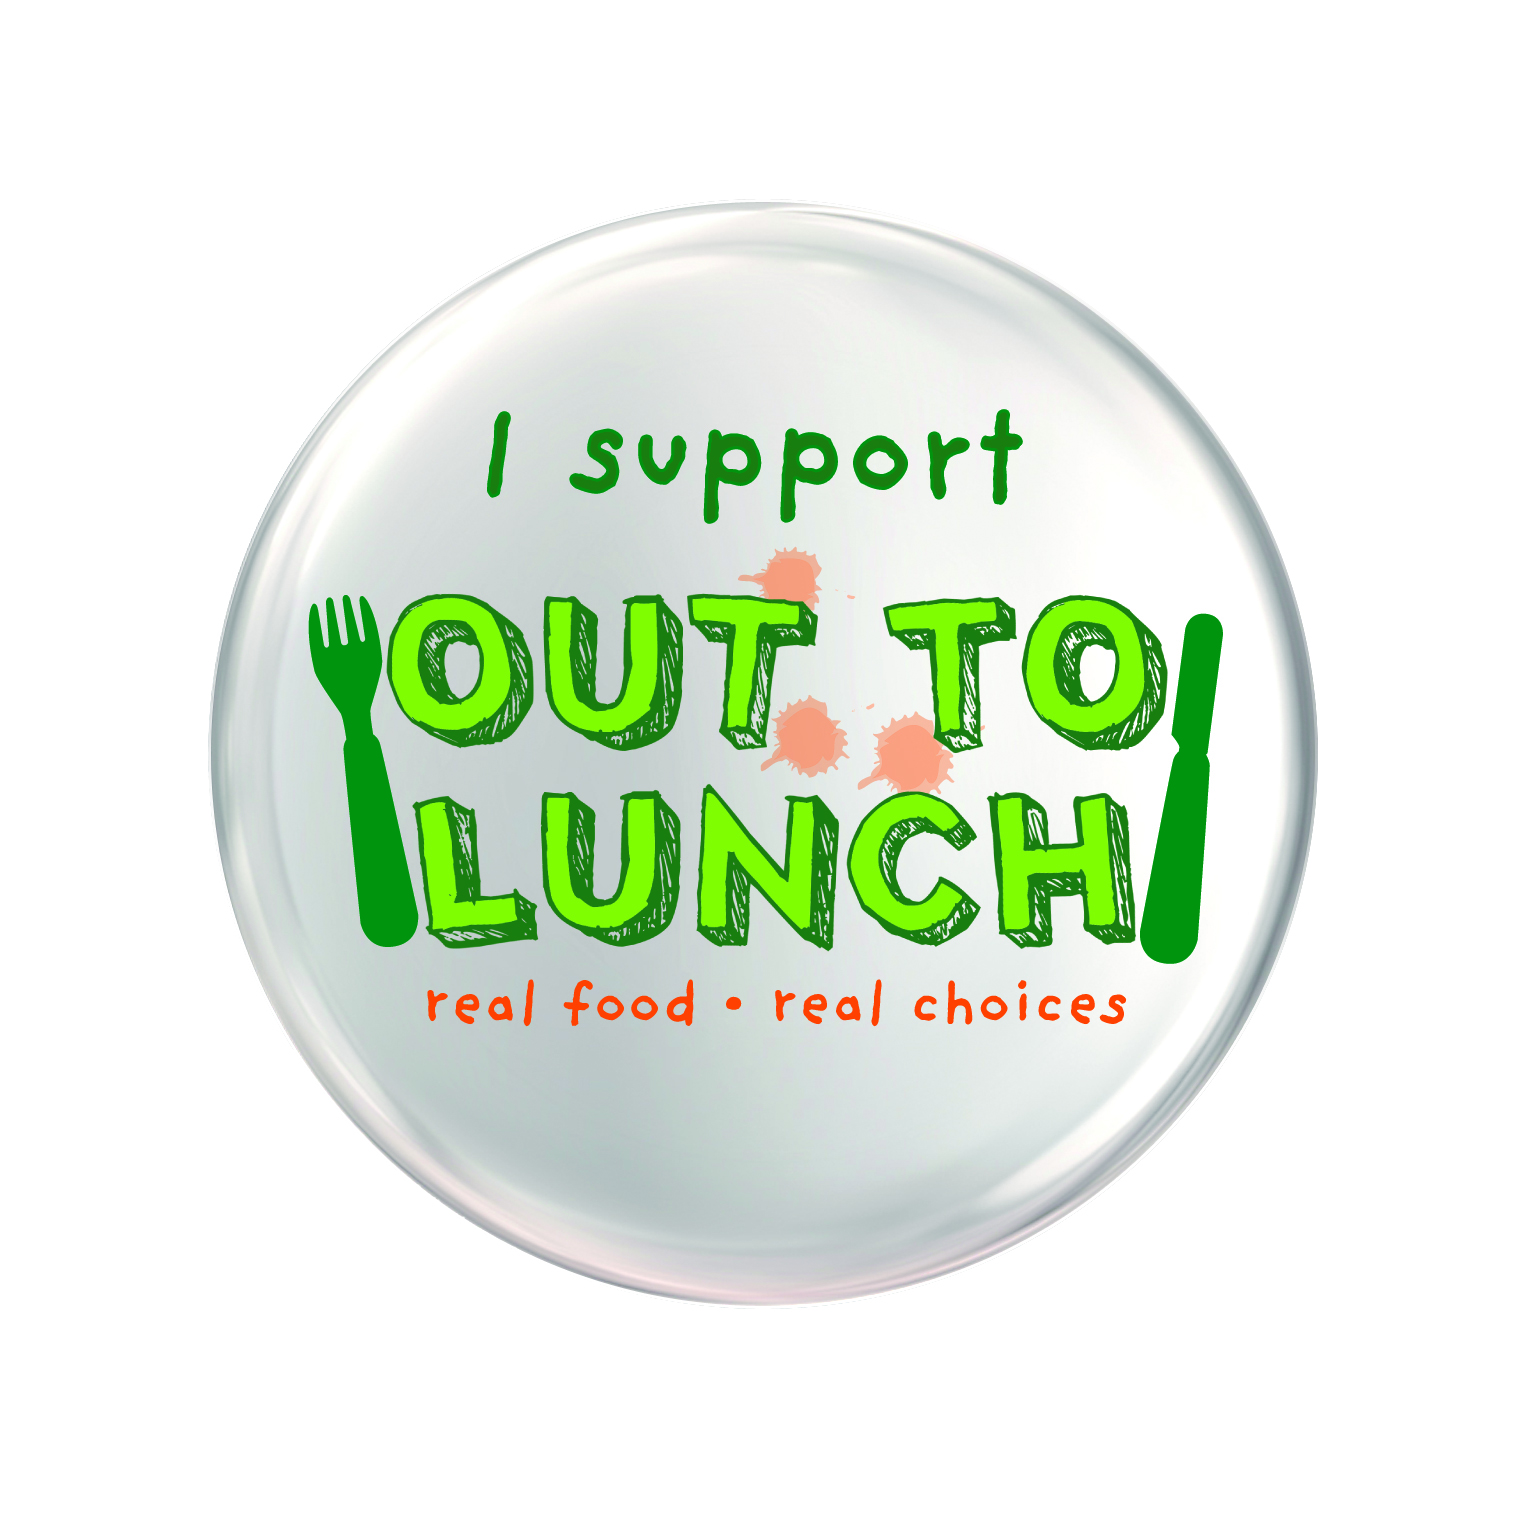 image about Printable Out to Lunch Sign named out for lunch indication printables -